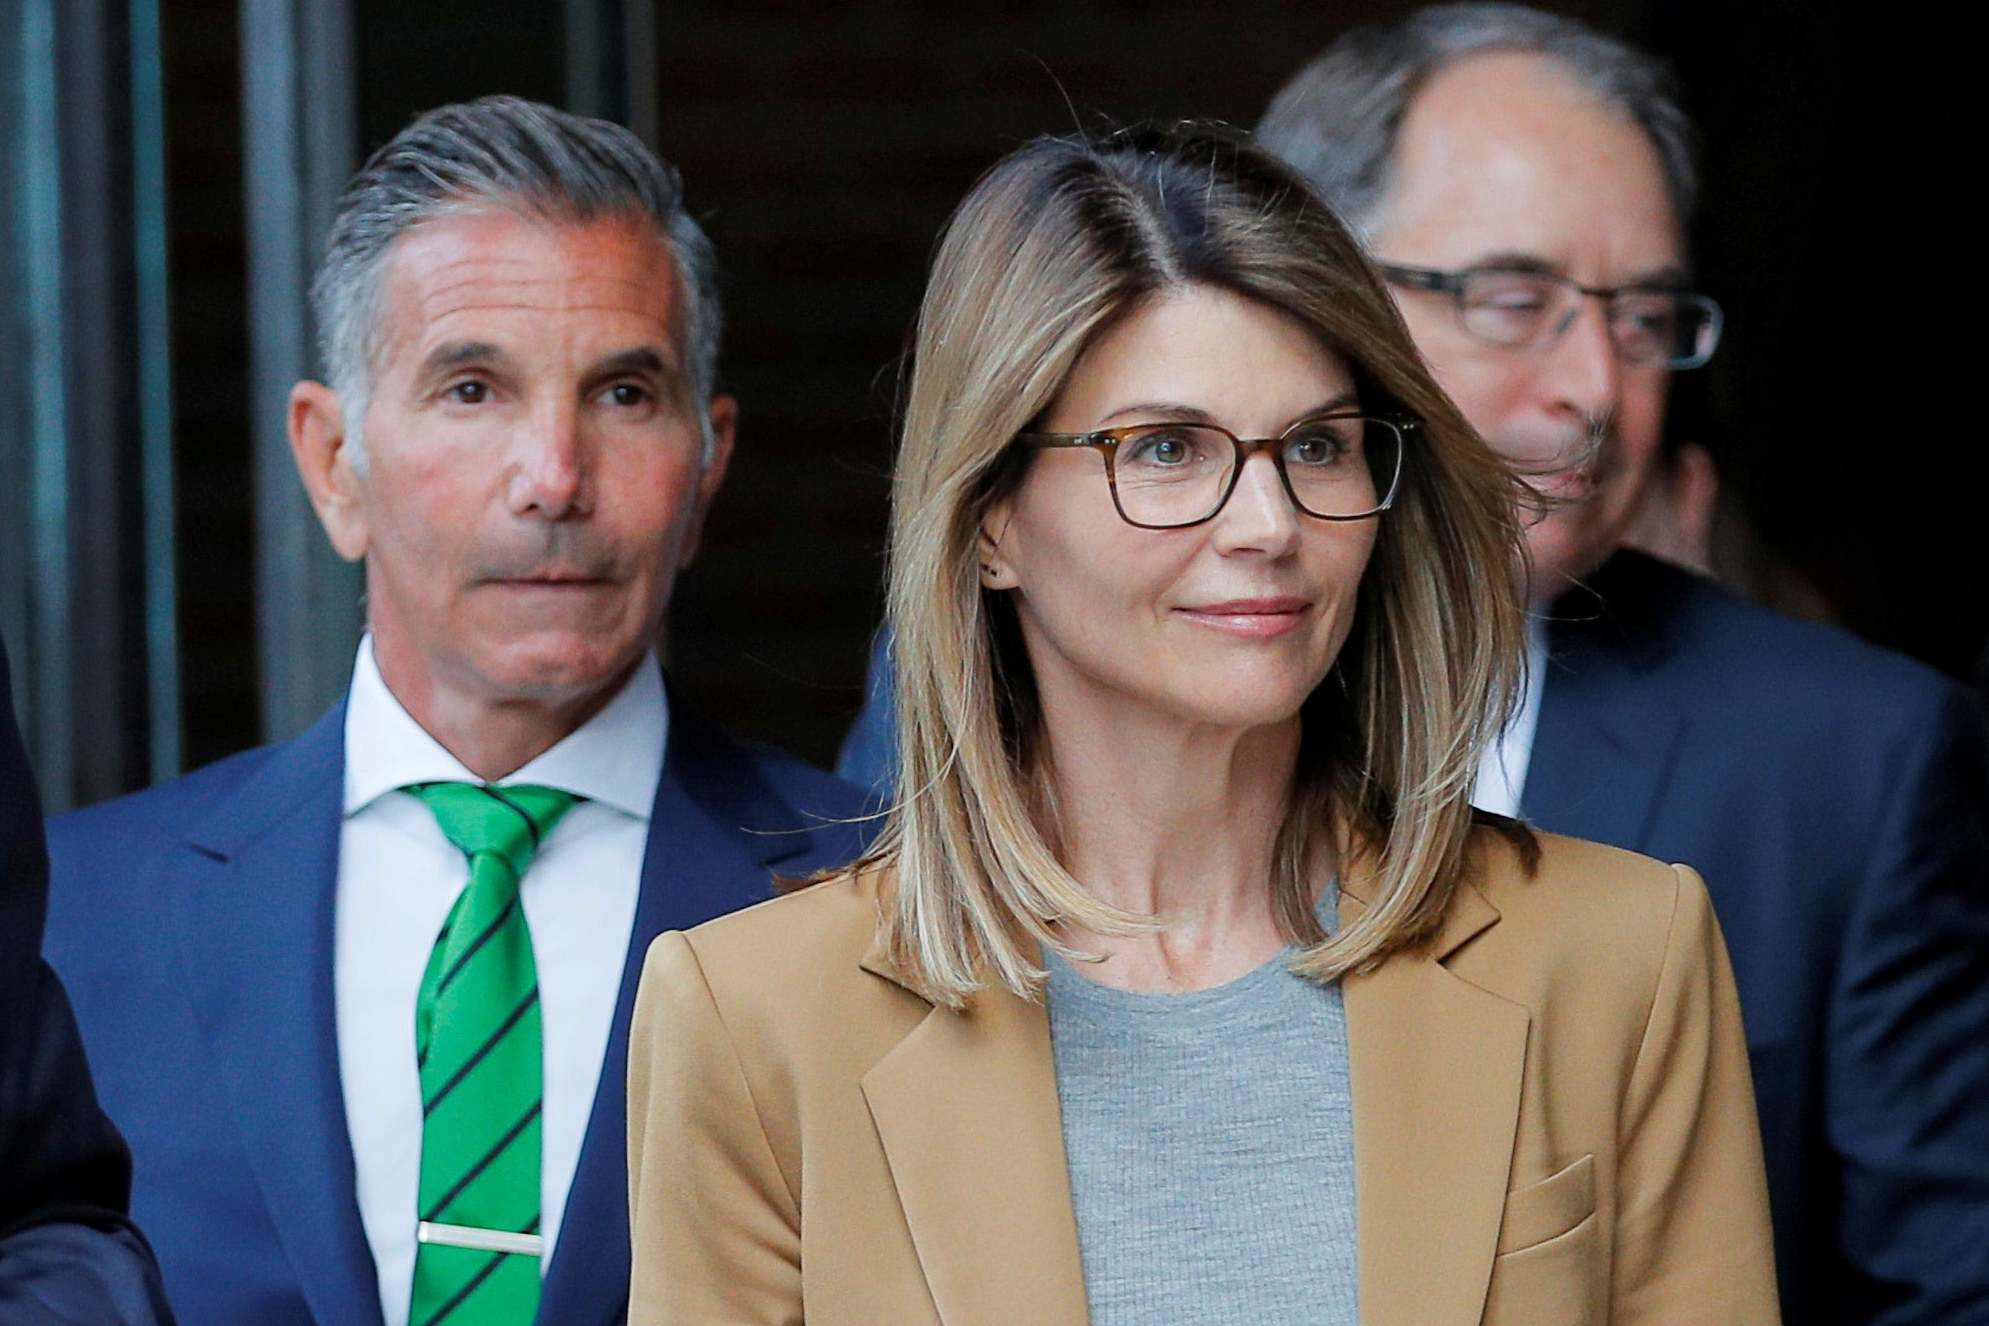 Lori Loughlin released after serving detention center term for university bribes scam